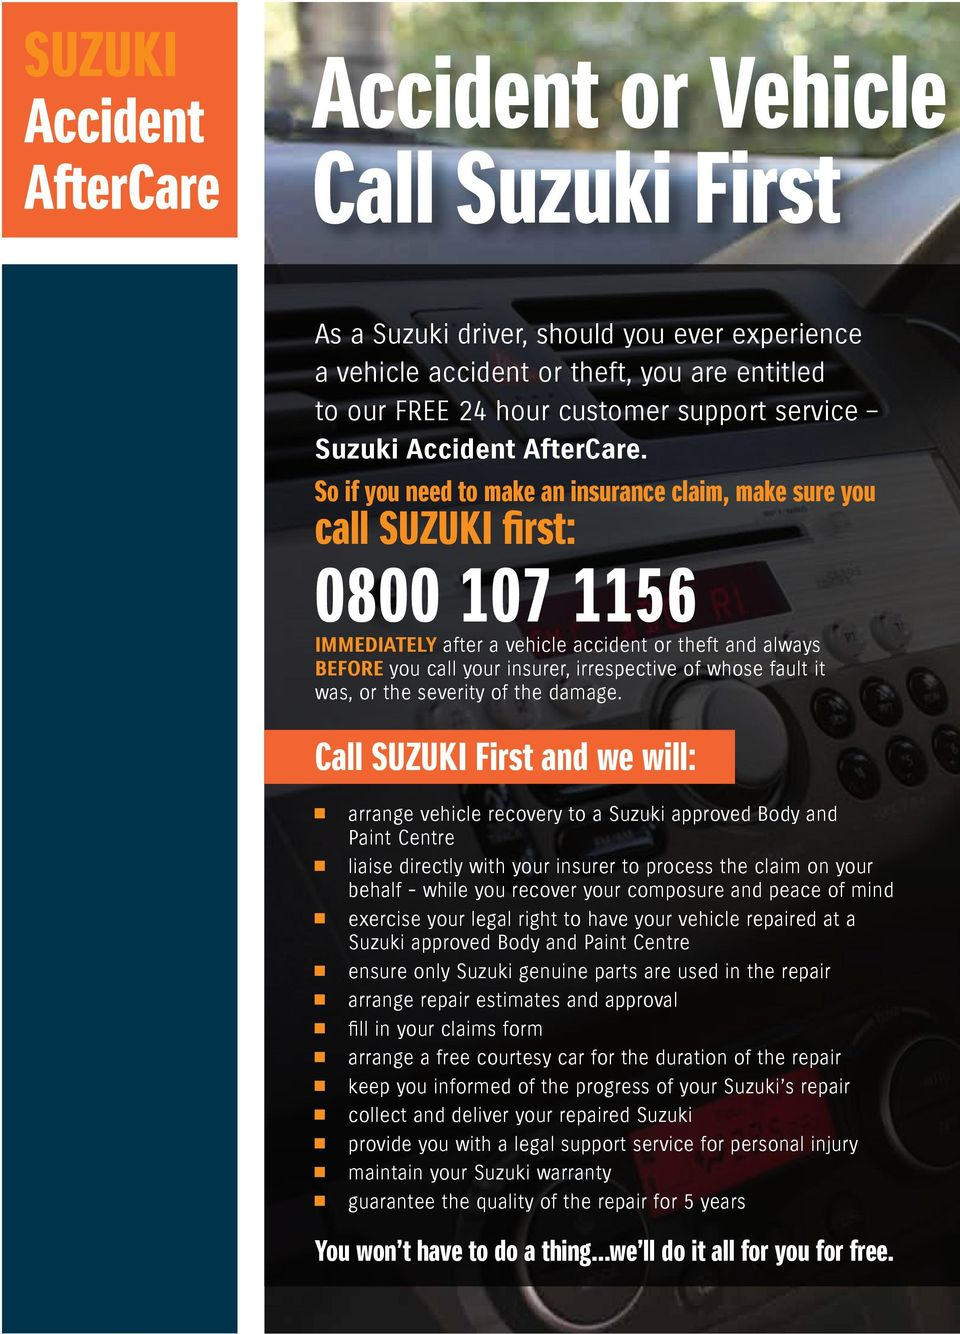 So if you need to make an insurance claim, make sure you call SUZUKI first: 0800 107 1156 IMMEDIATELY after a vehicle accident or theft and always BEFORE you call your insurer, irrespective of whose